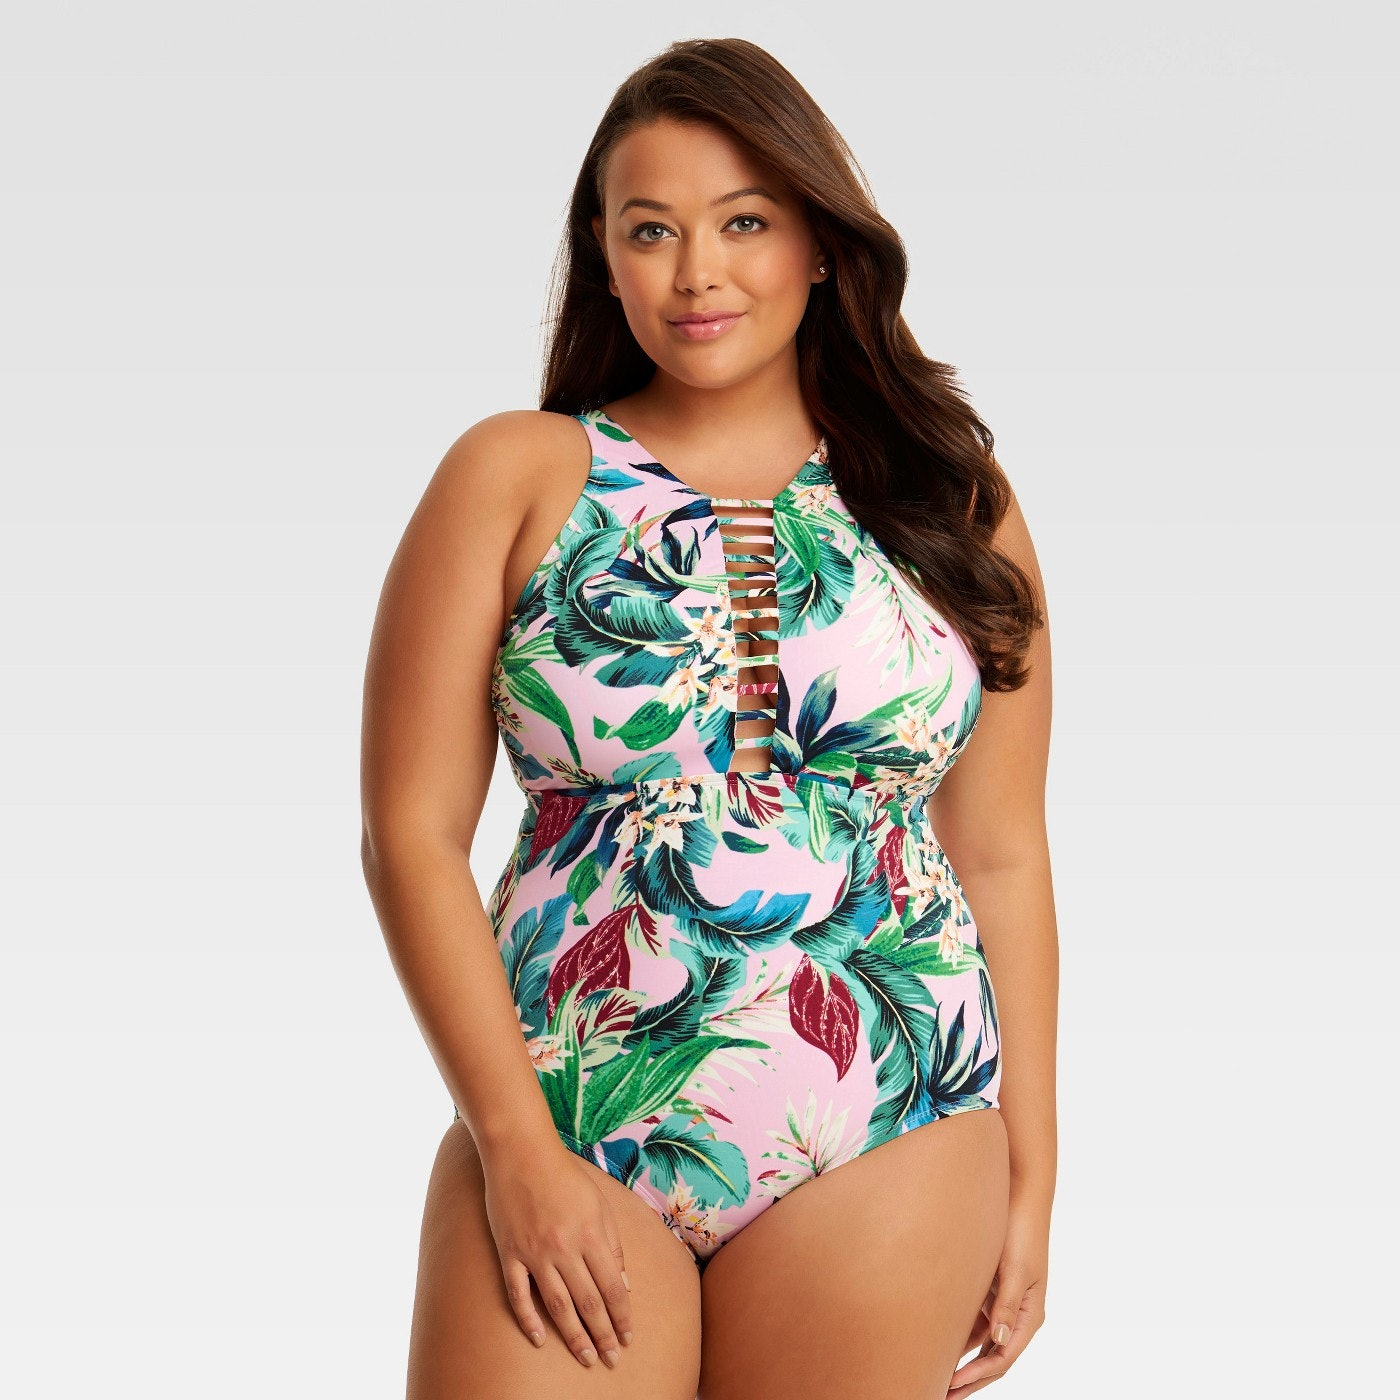 2626719b853 Target s Plus Size Swimsuit Line Was Just Released   Here Are The Best  Pieces